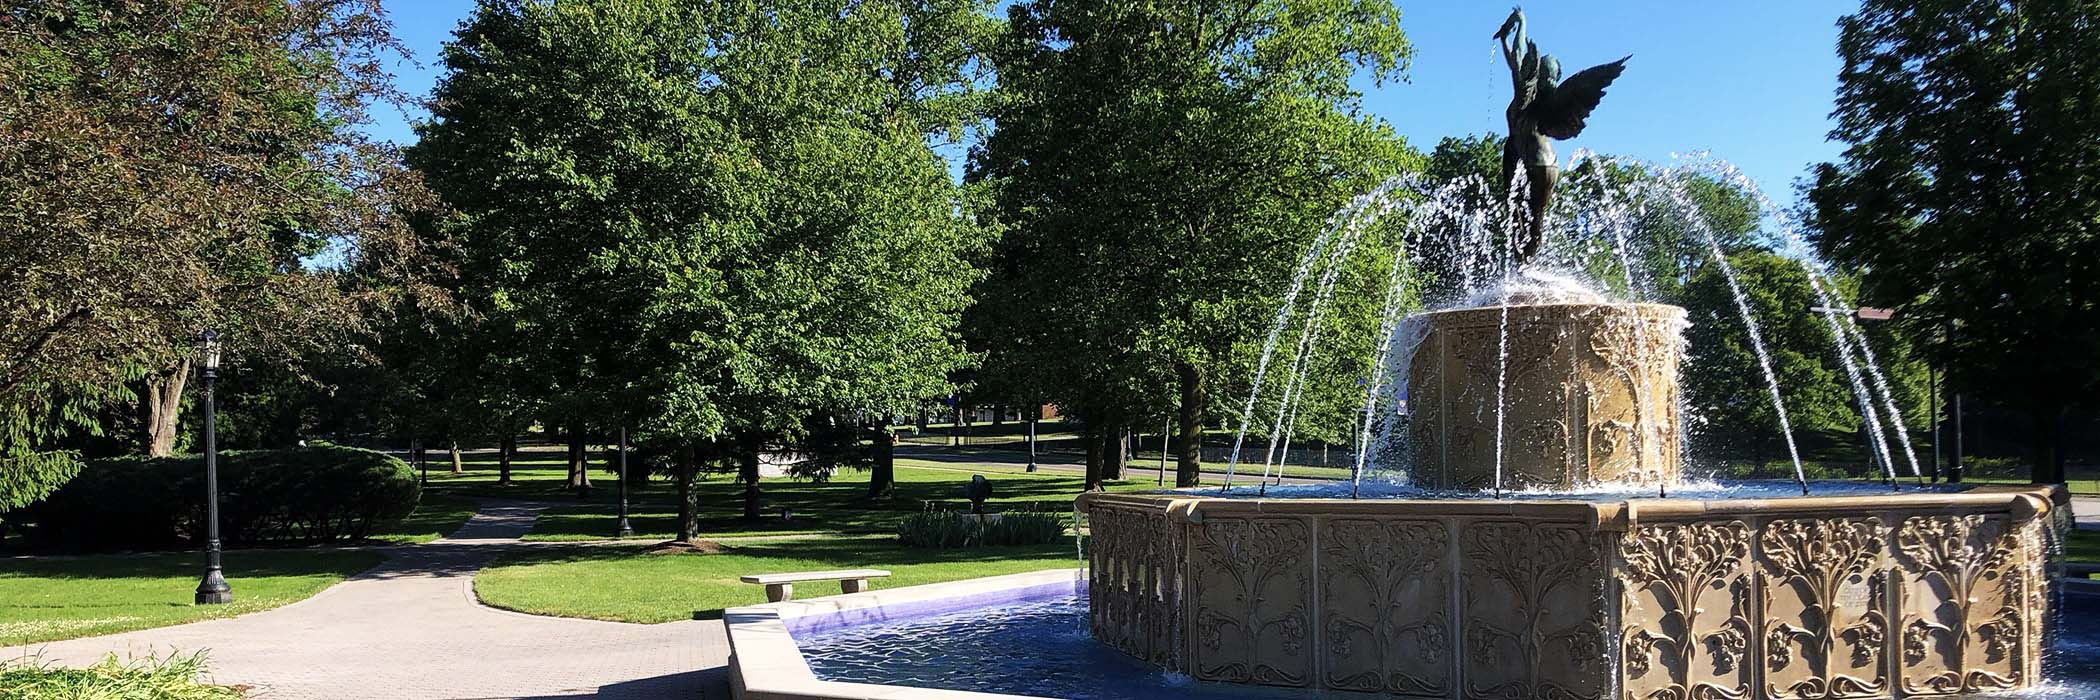 Image of fountain in on a sunny day